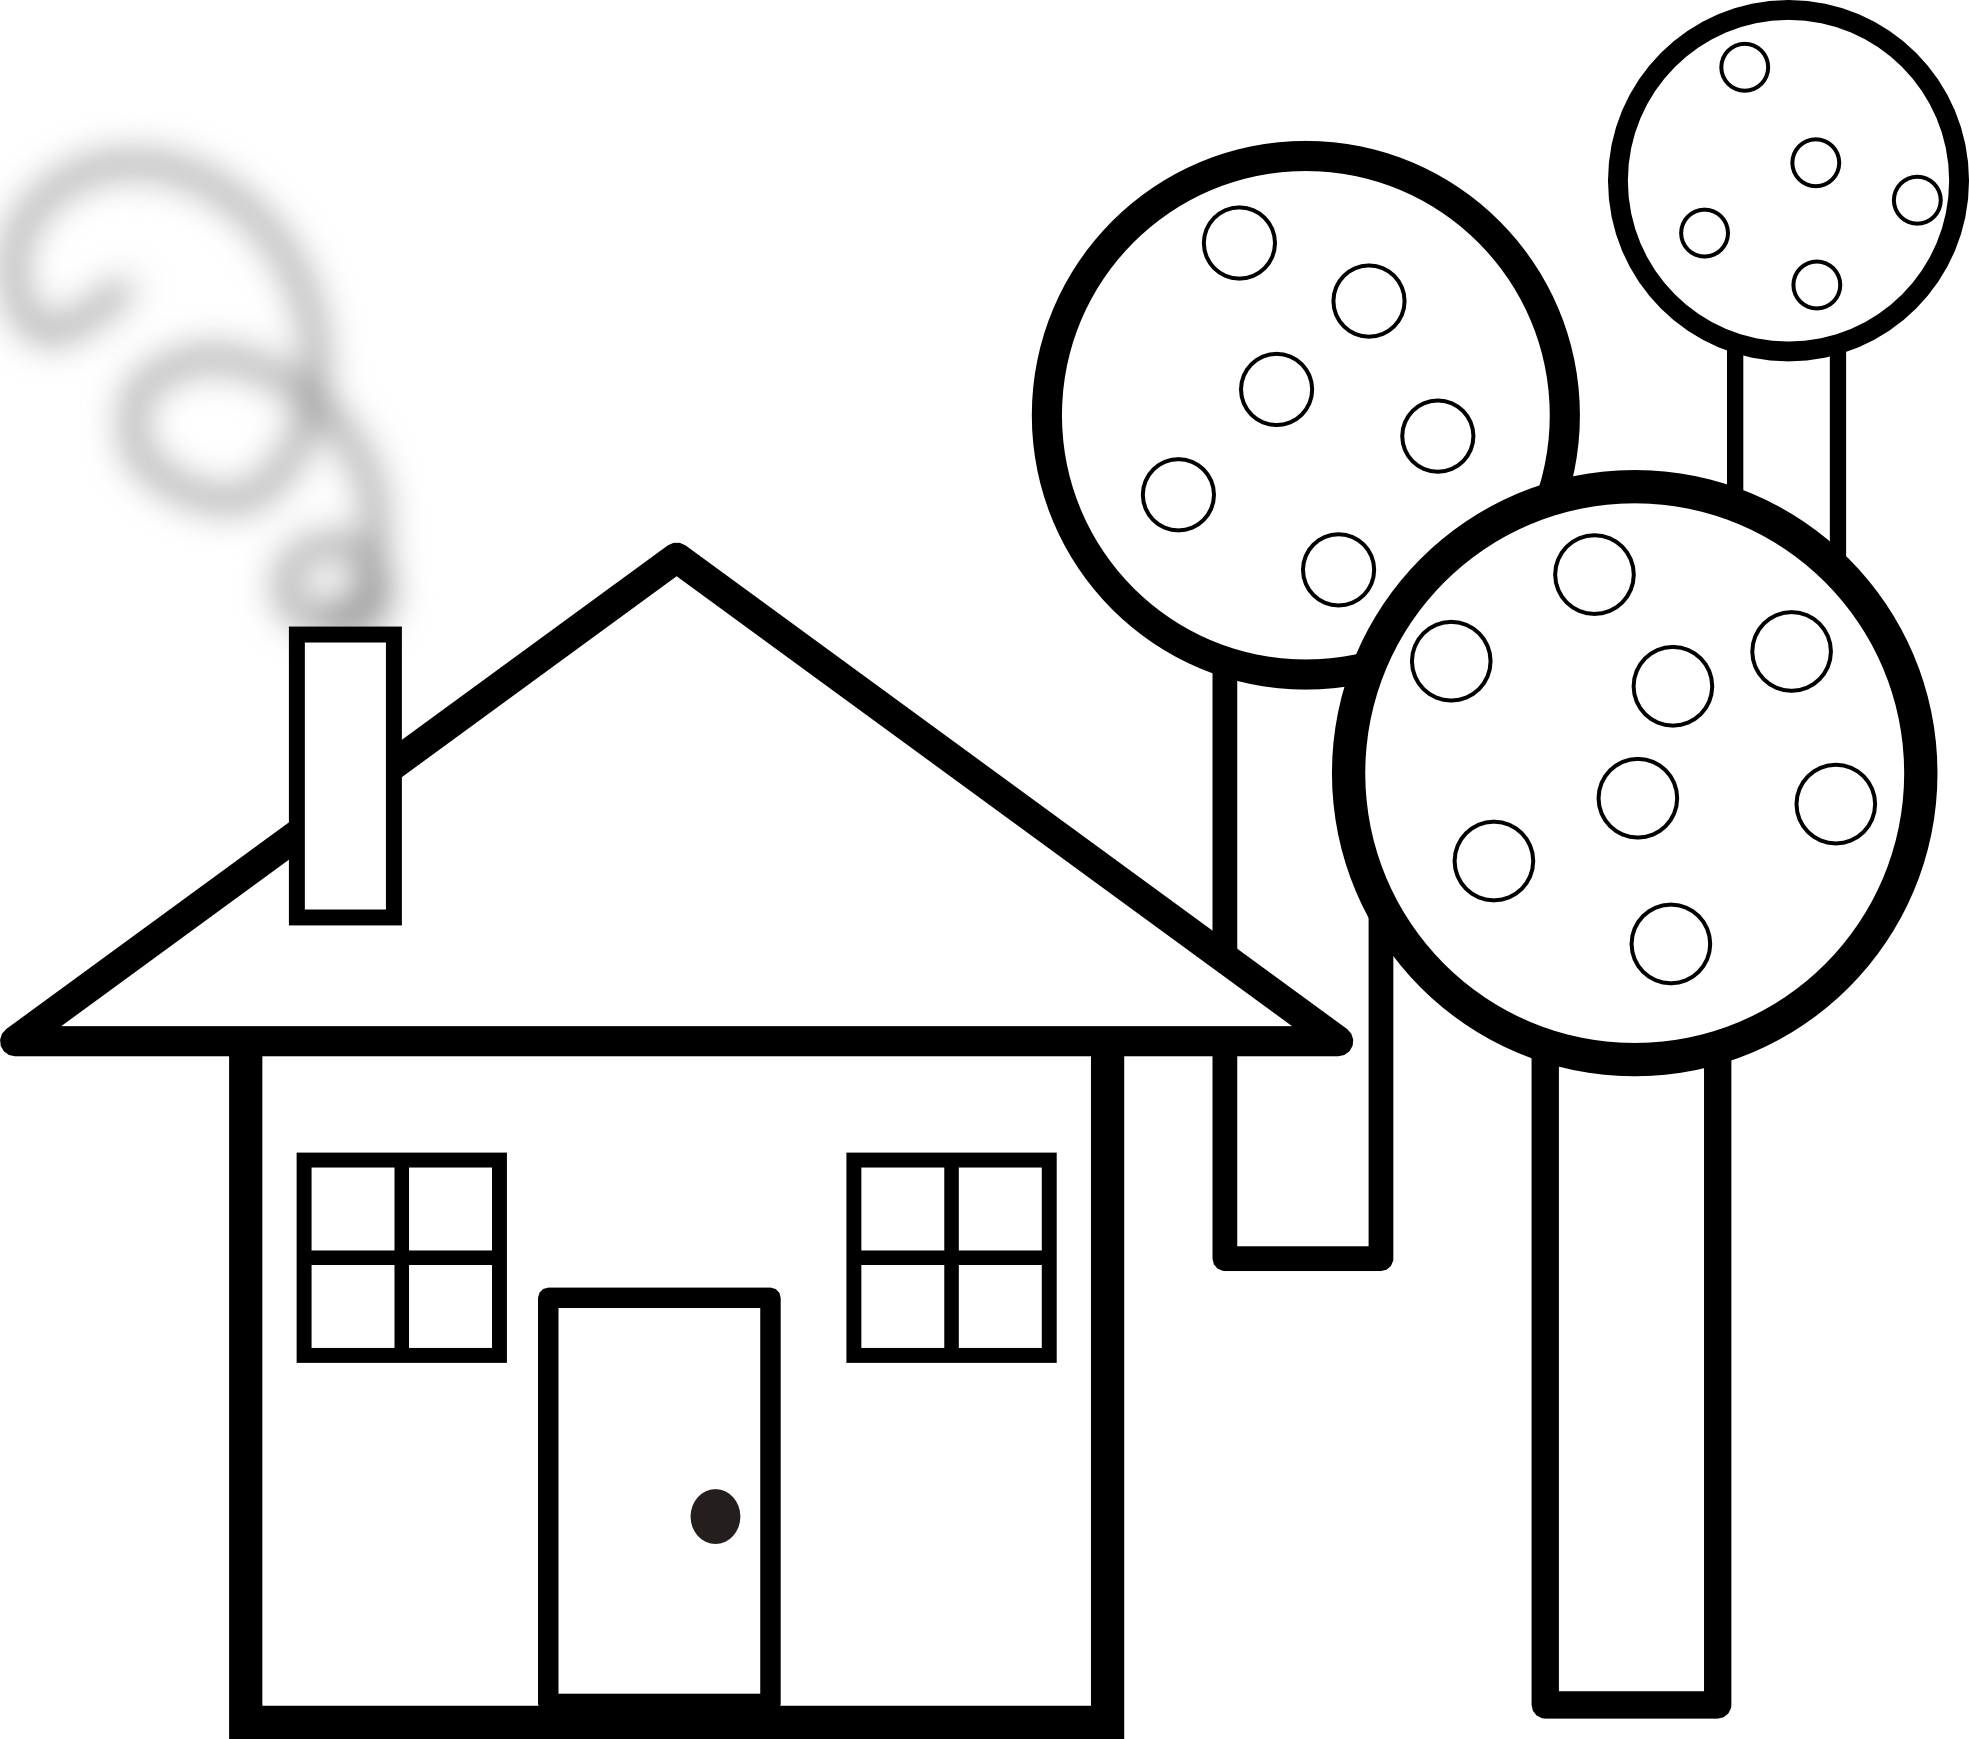 House drawing clipart picture black and white Haunted House Coloring Page | Clipart Panda - Free Clipart Images picture black and white